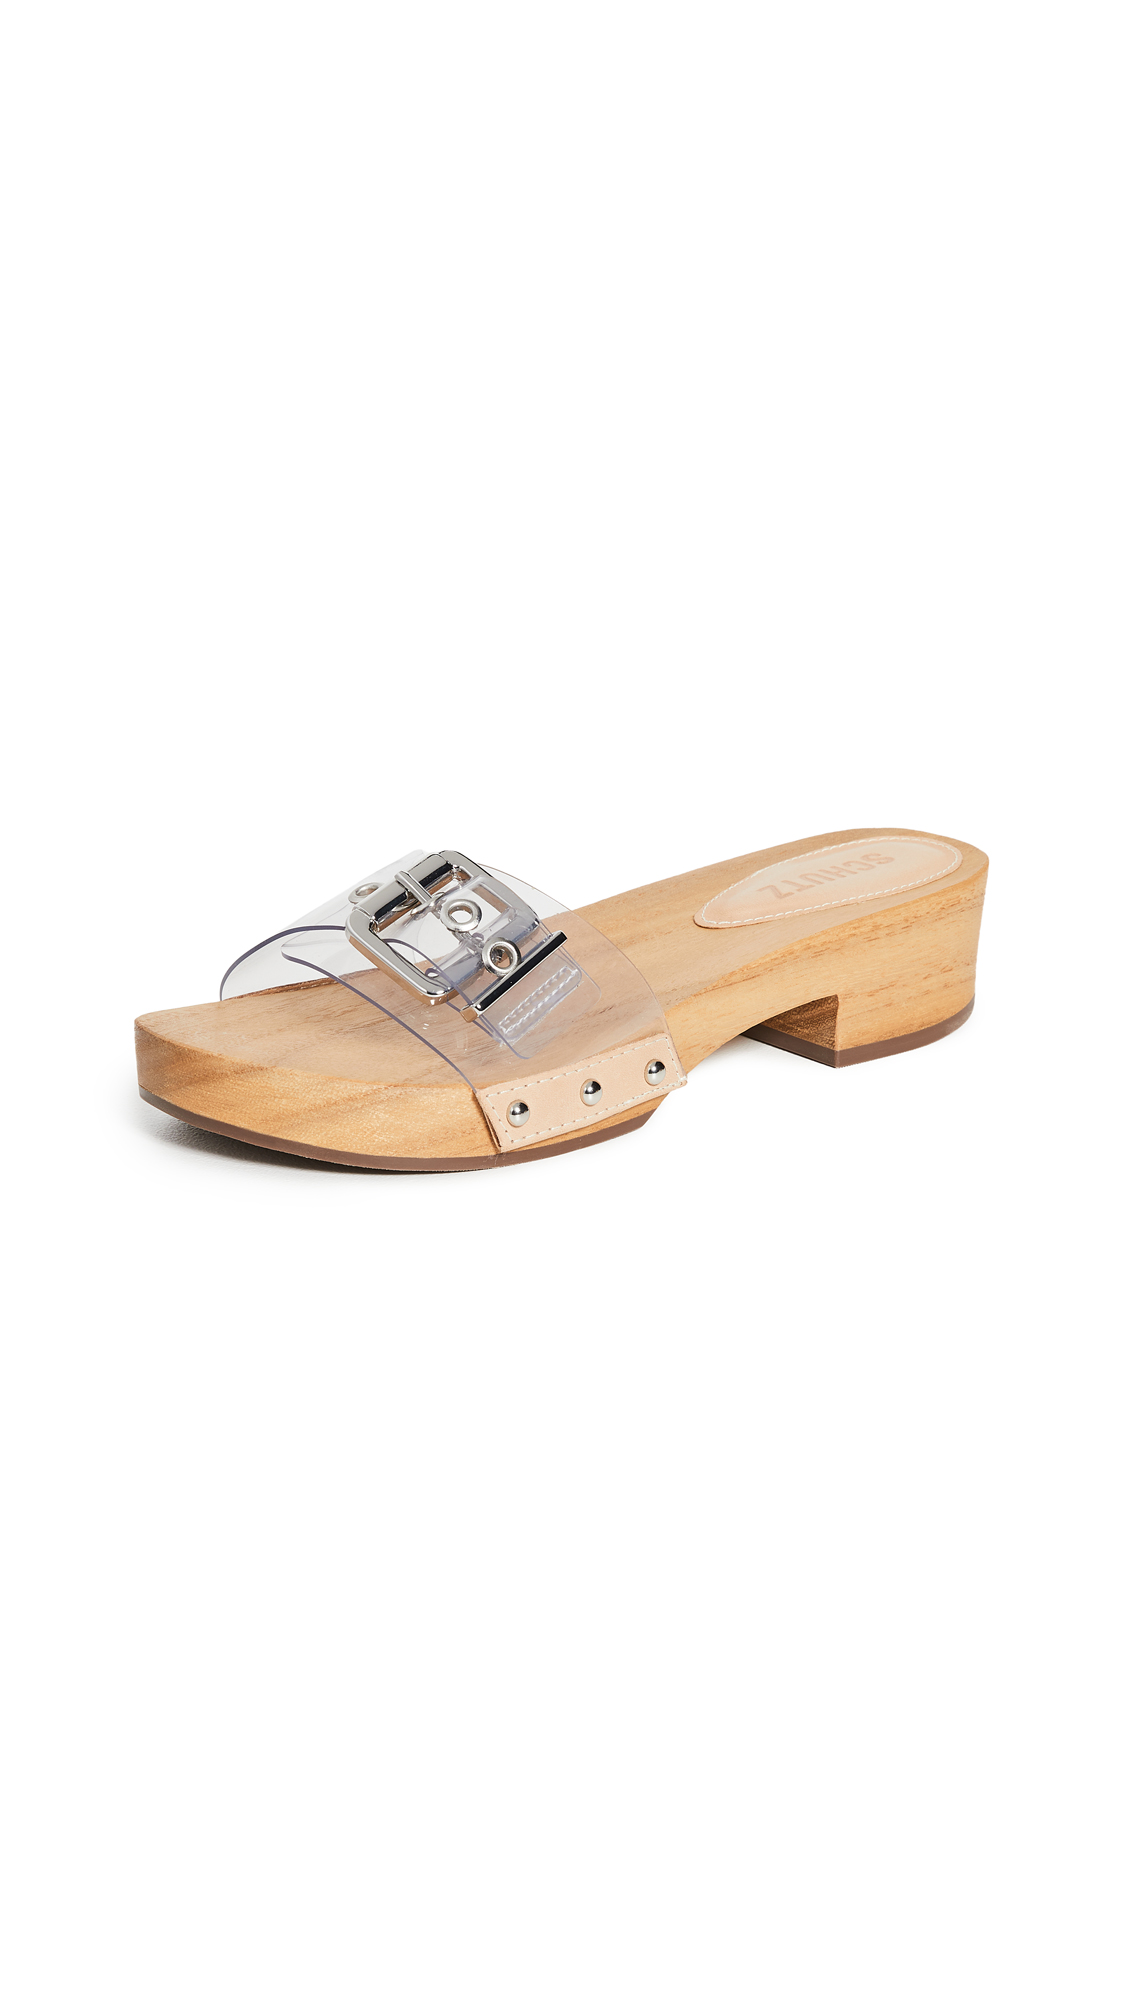 Schutz Leonia 2 Clogs - 30% Off Sale